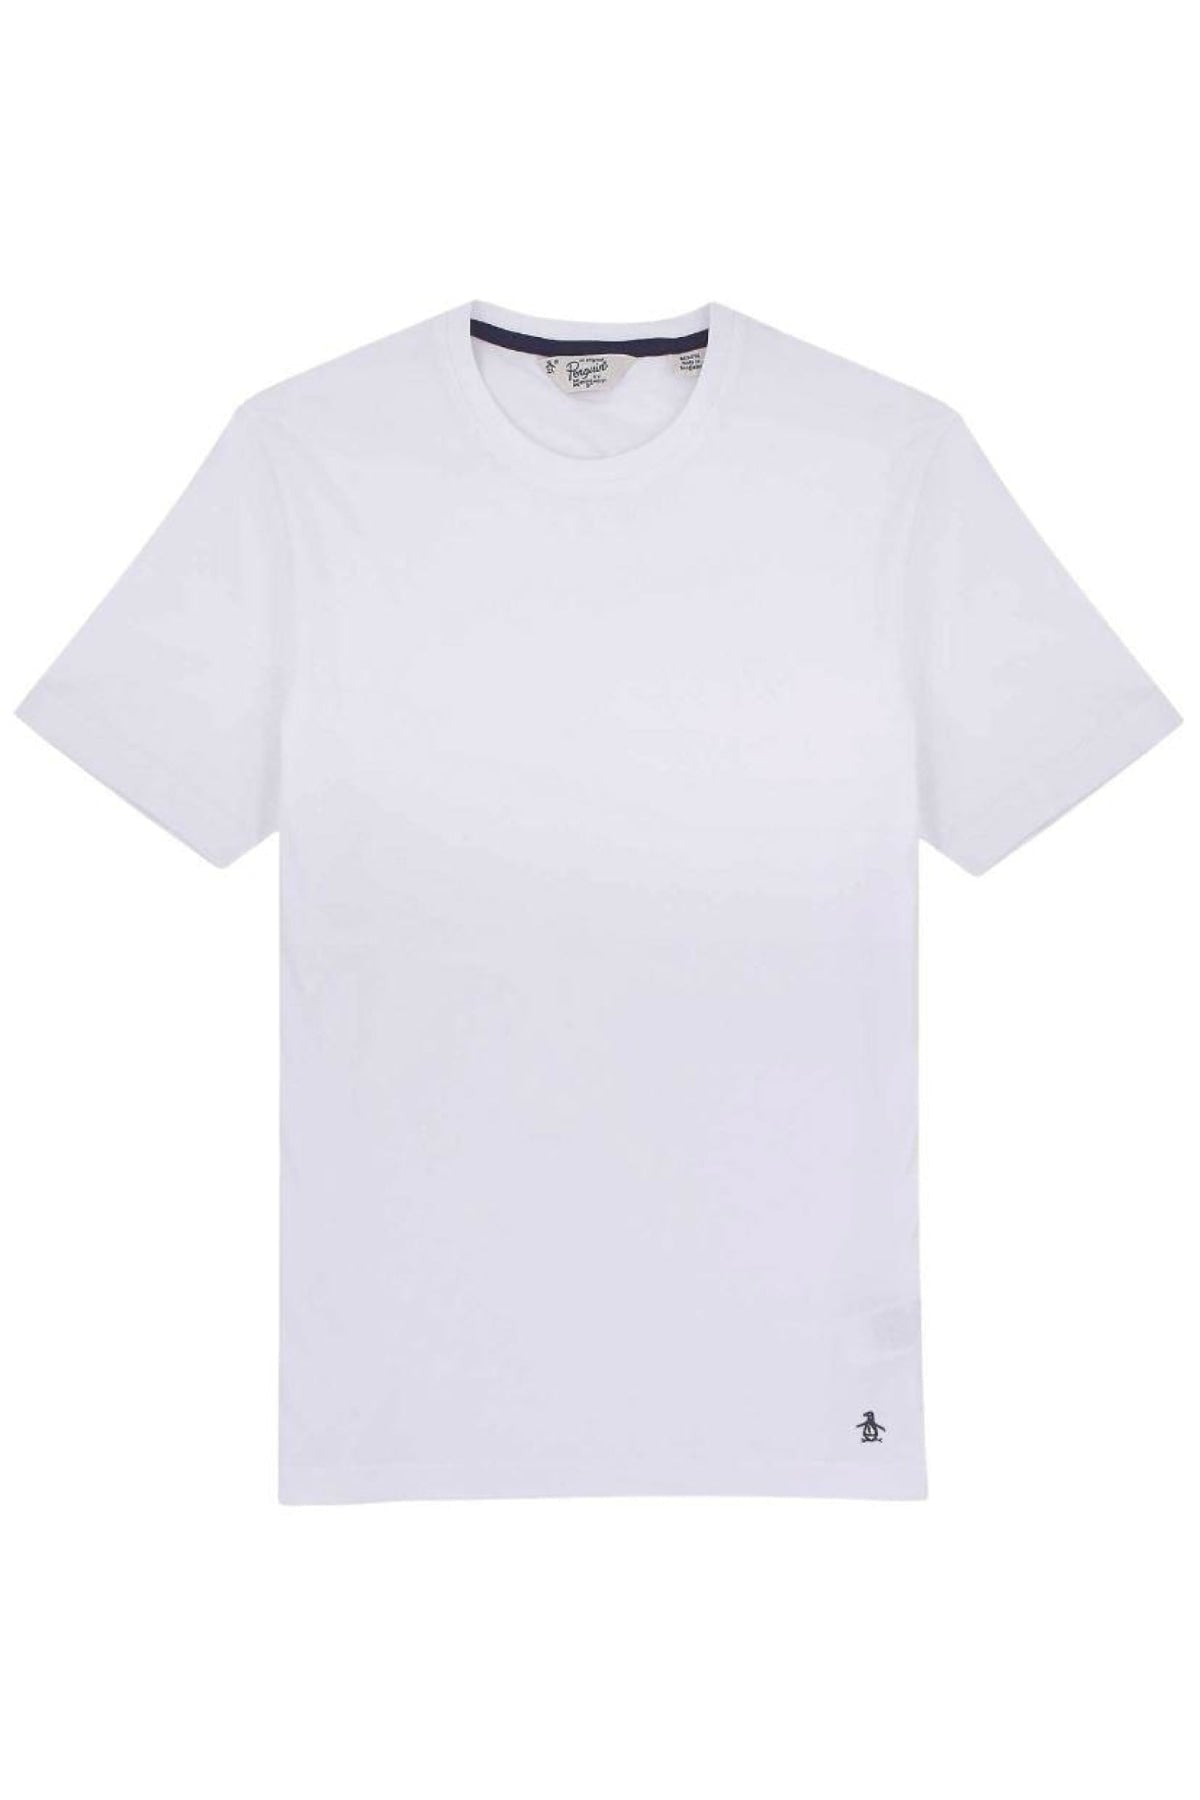 Penguin Original Pinpoint T-Shirts | M / White Secret Label